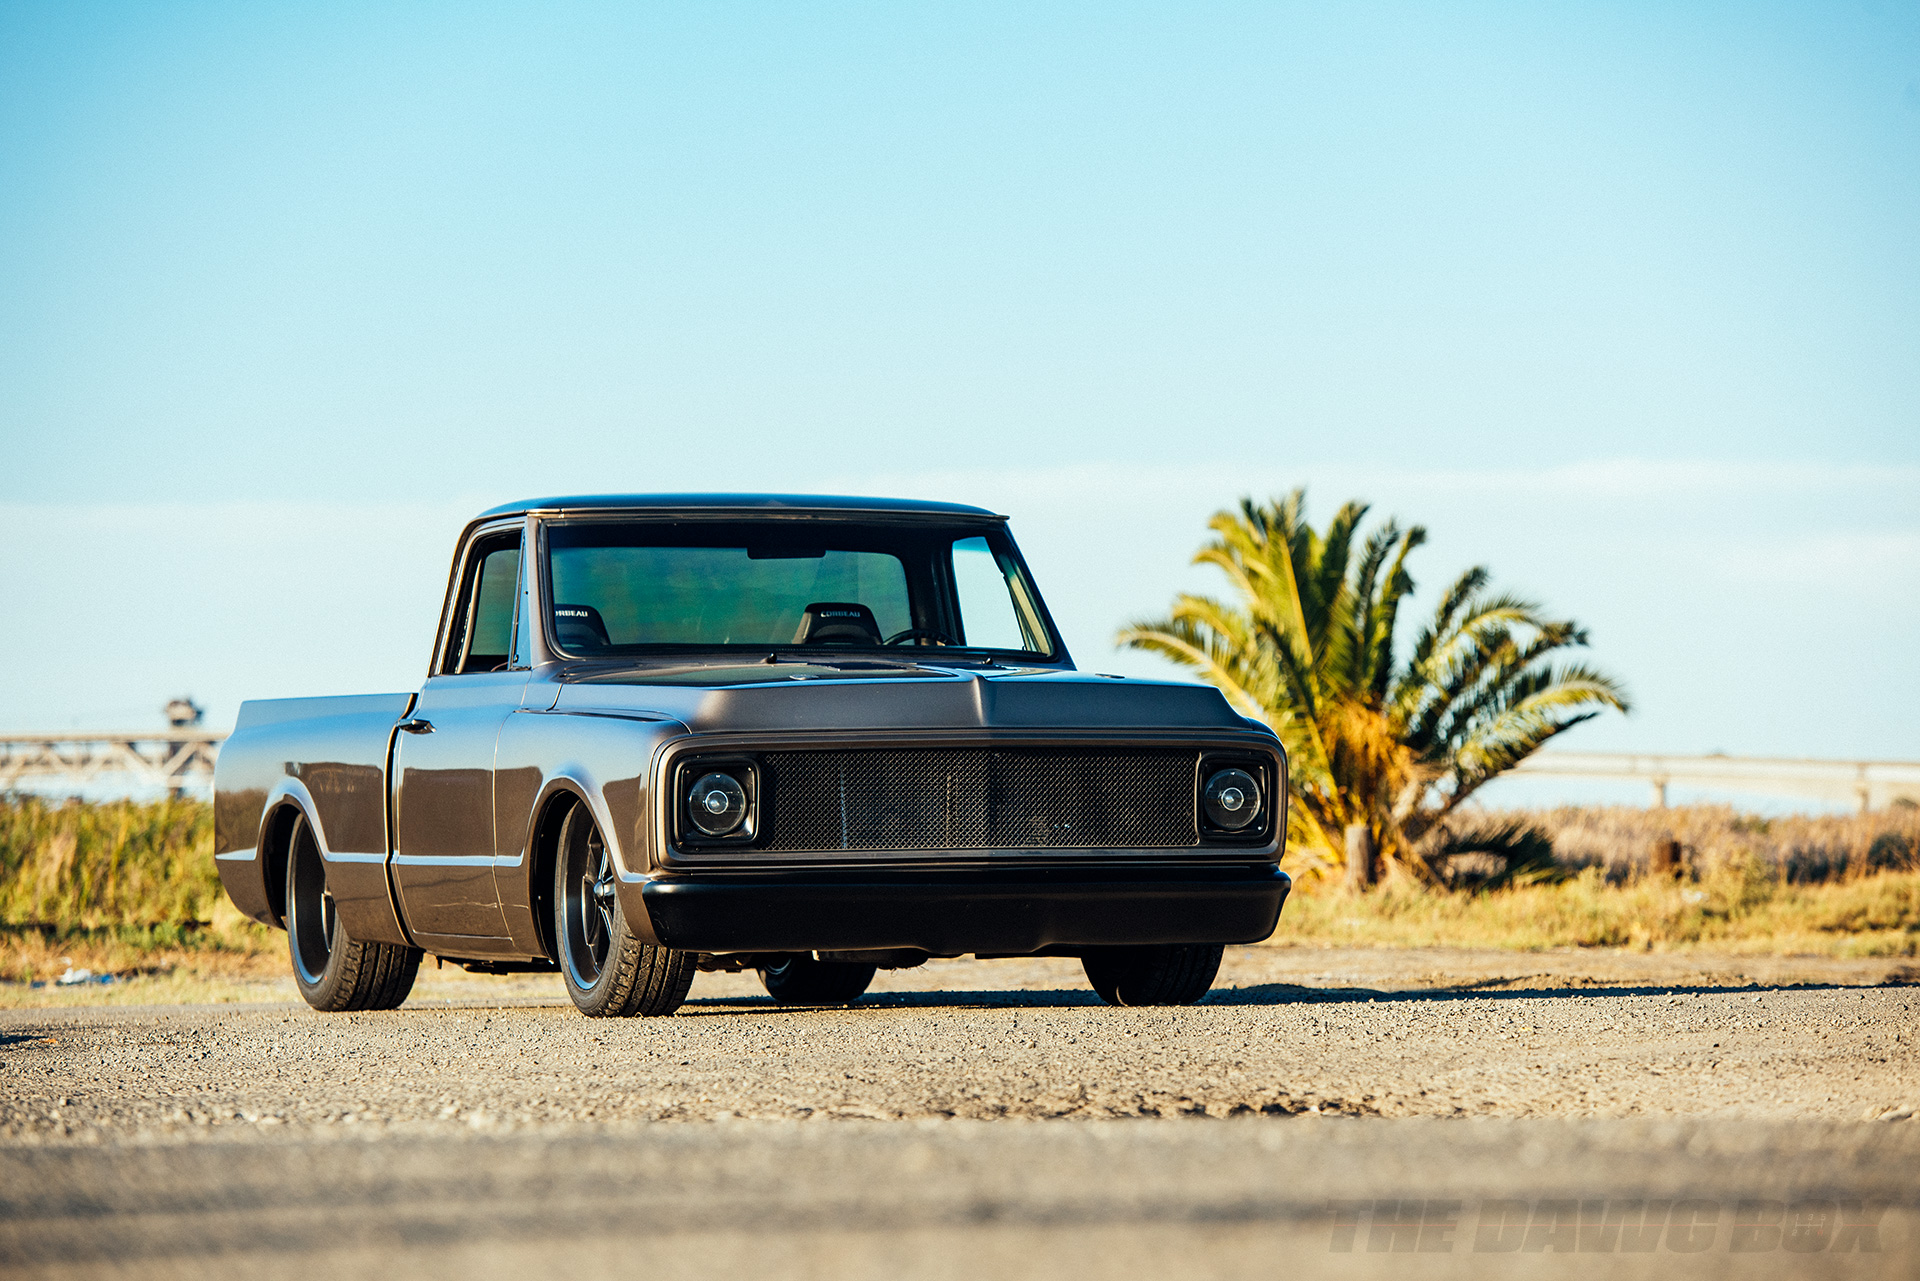 Third Time's The Charm: Dustin Reed's 1972 Chevy C10, Corner View